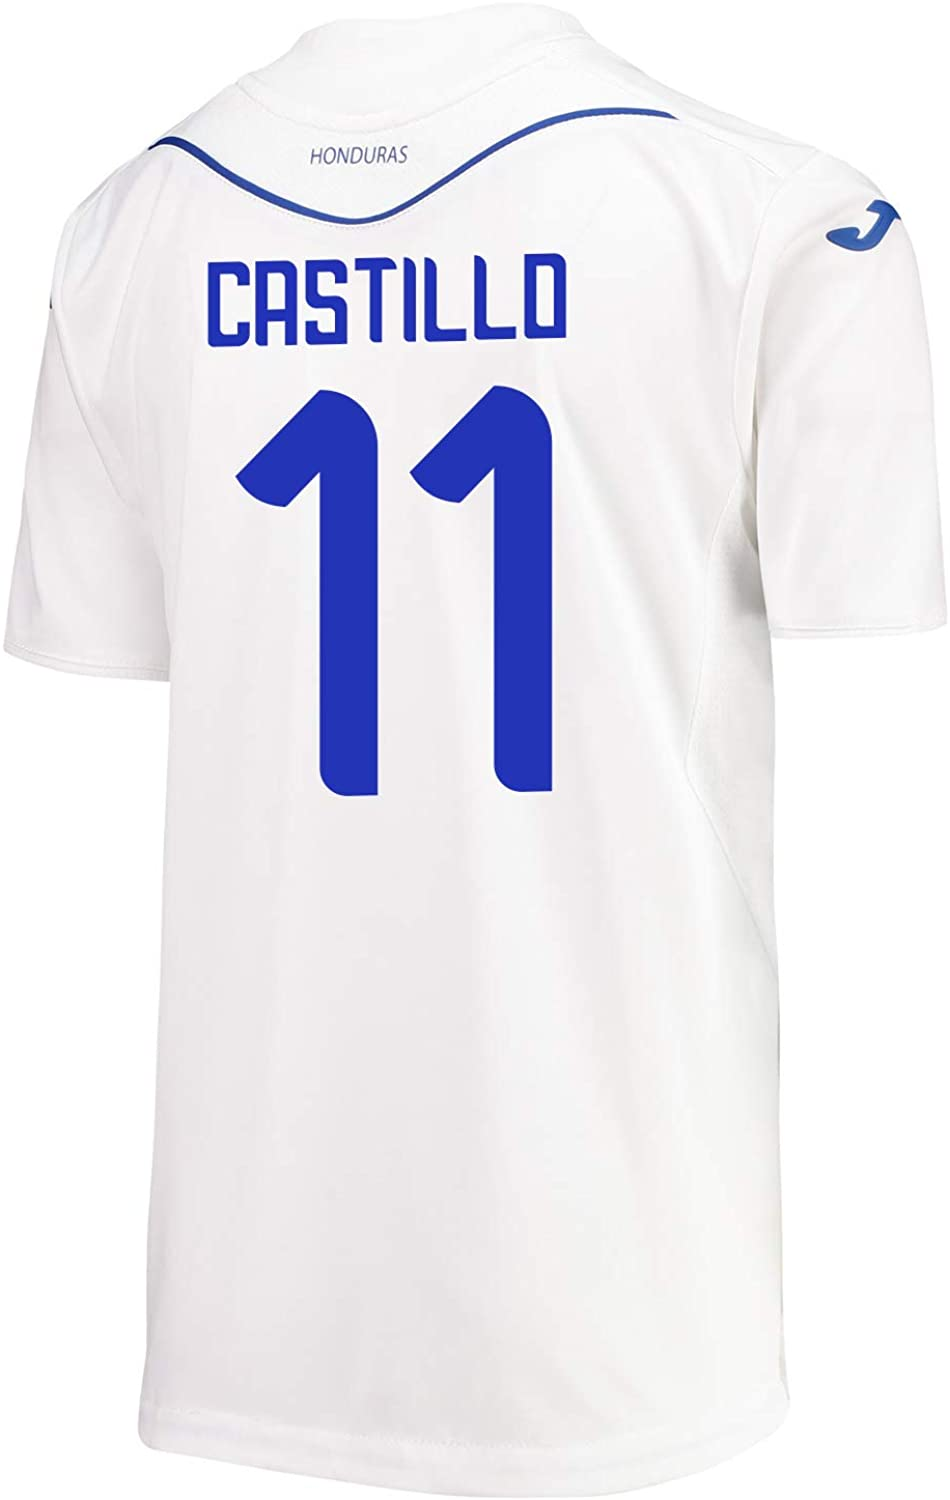 Joma Castillo #11 Honduras Home Soccer Youth Jersey 2019-20